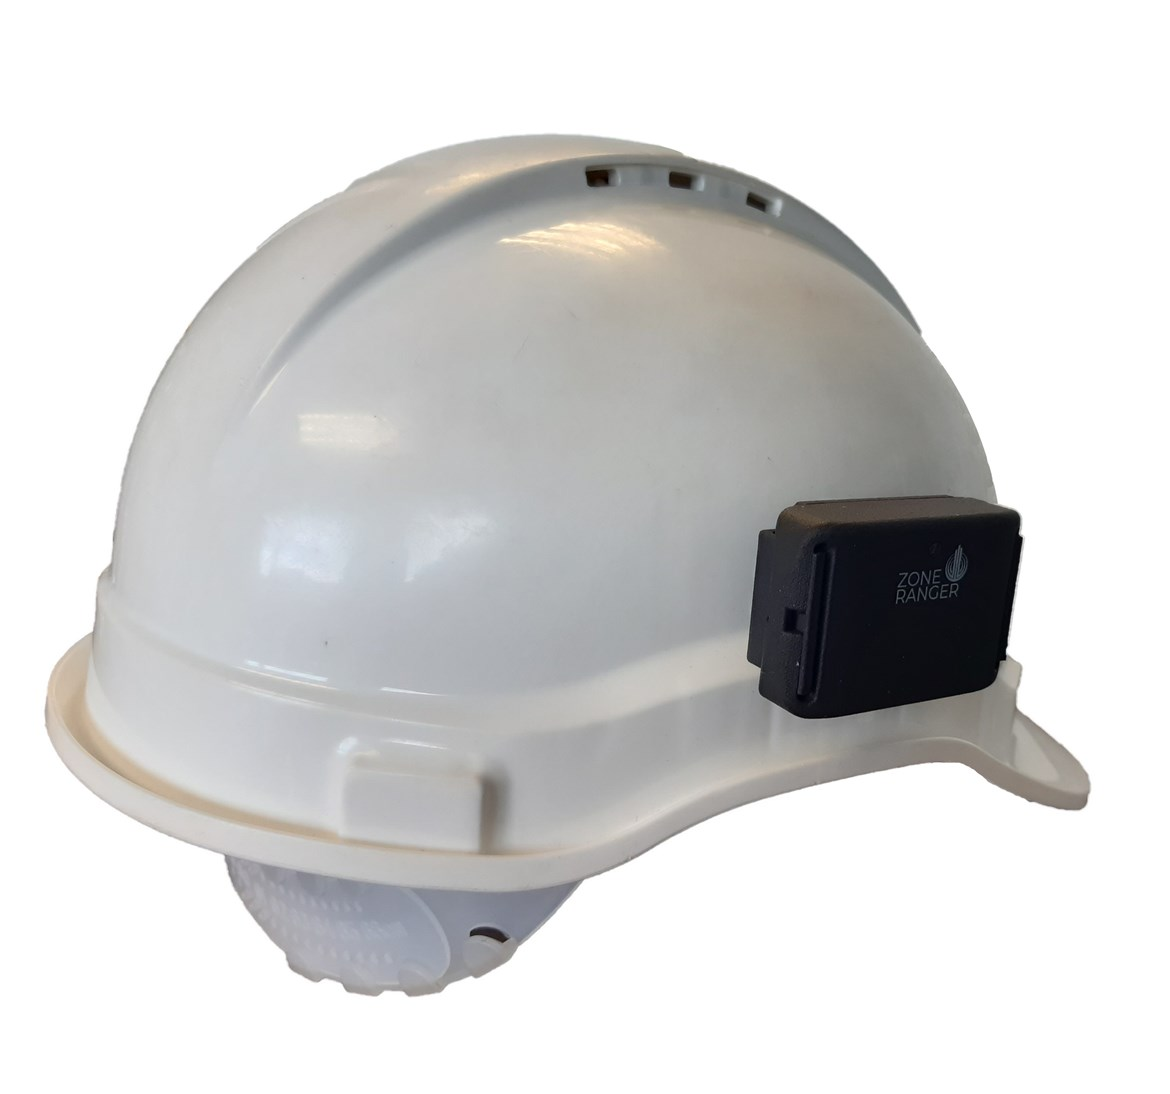 British firm's social distancing helmets keep HS2 workers safe: Zoneranger device affixed to helmet